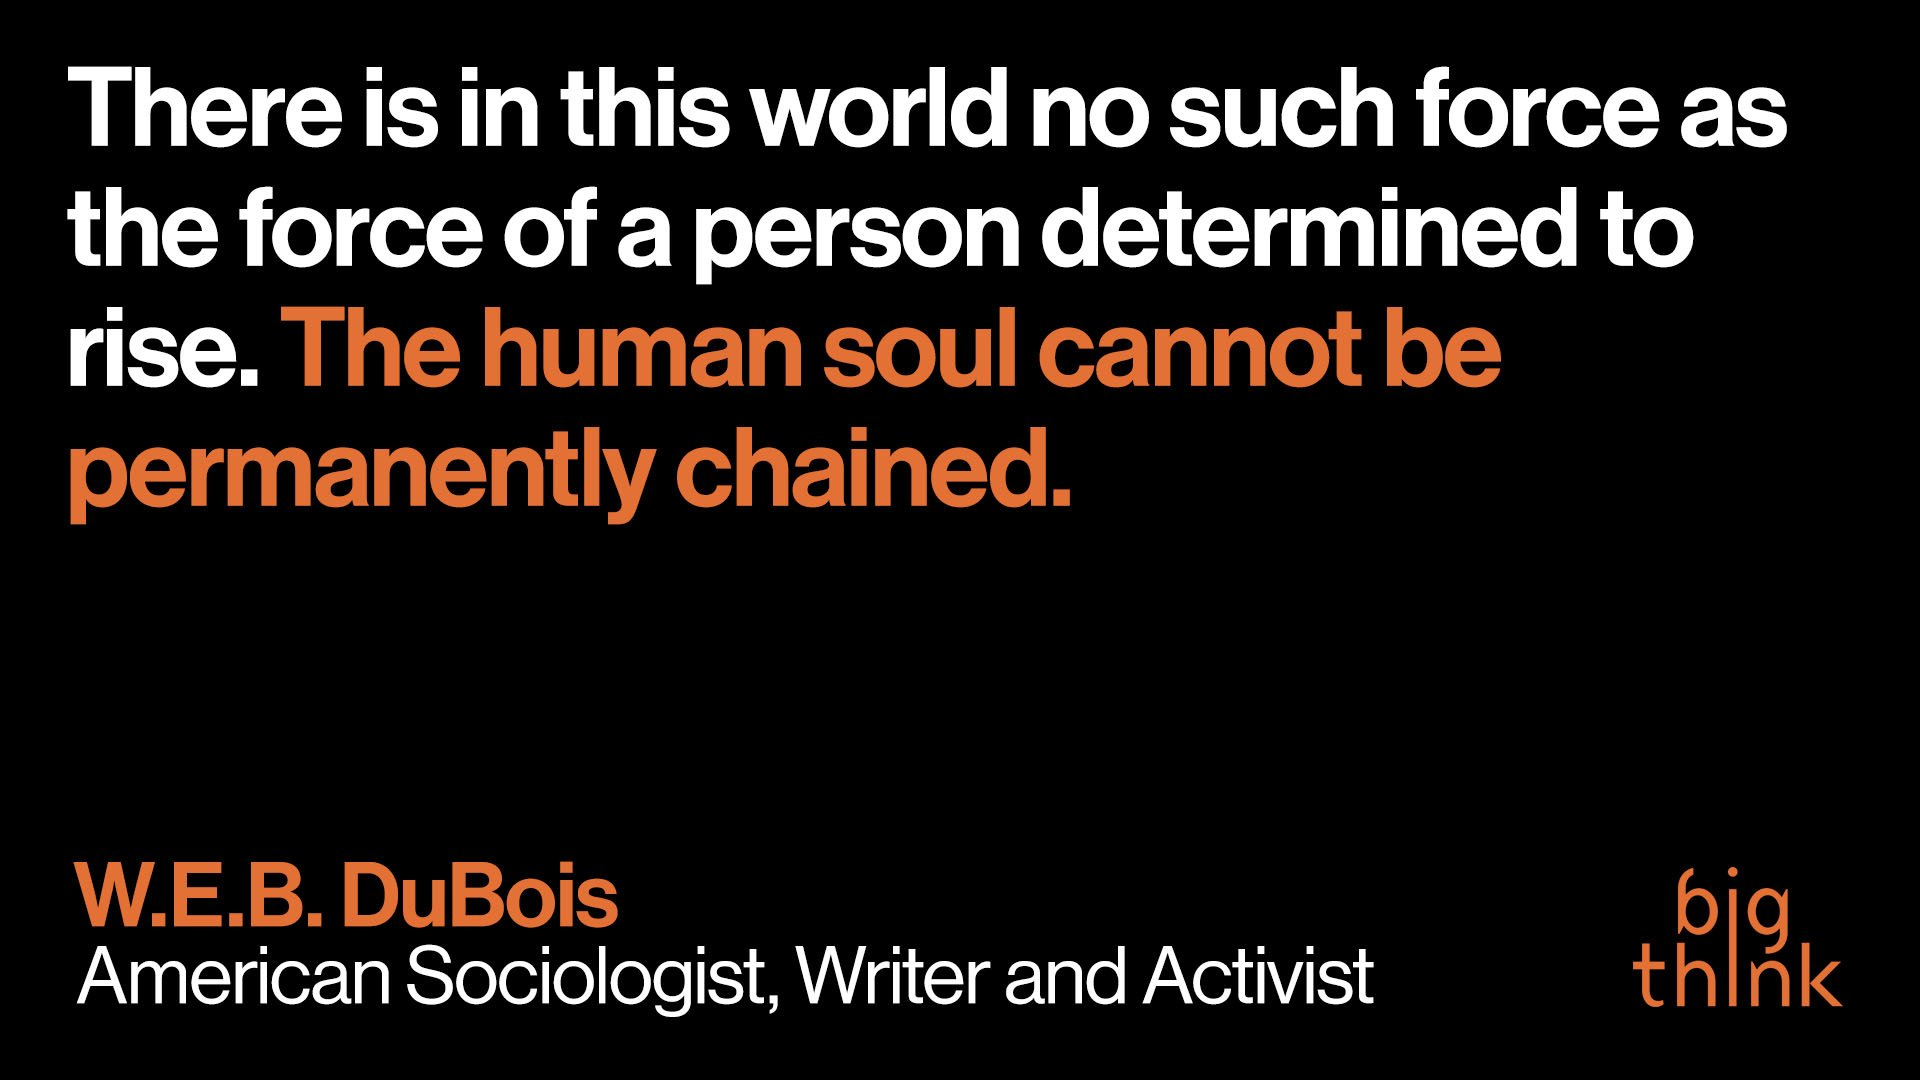 W.E.B. DuBois, co-founder of @NAACP, was born on this day in 1868. https://t.co/sHV3mBCnMI